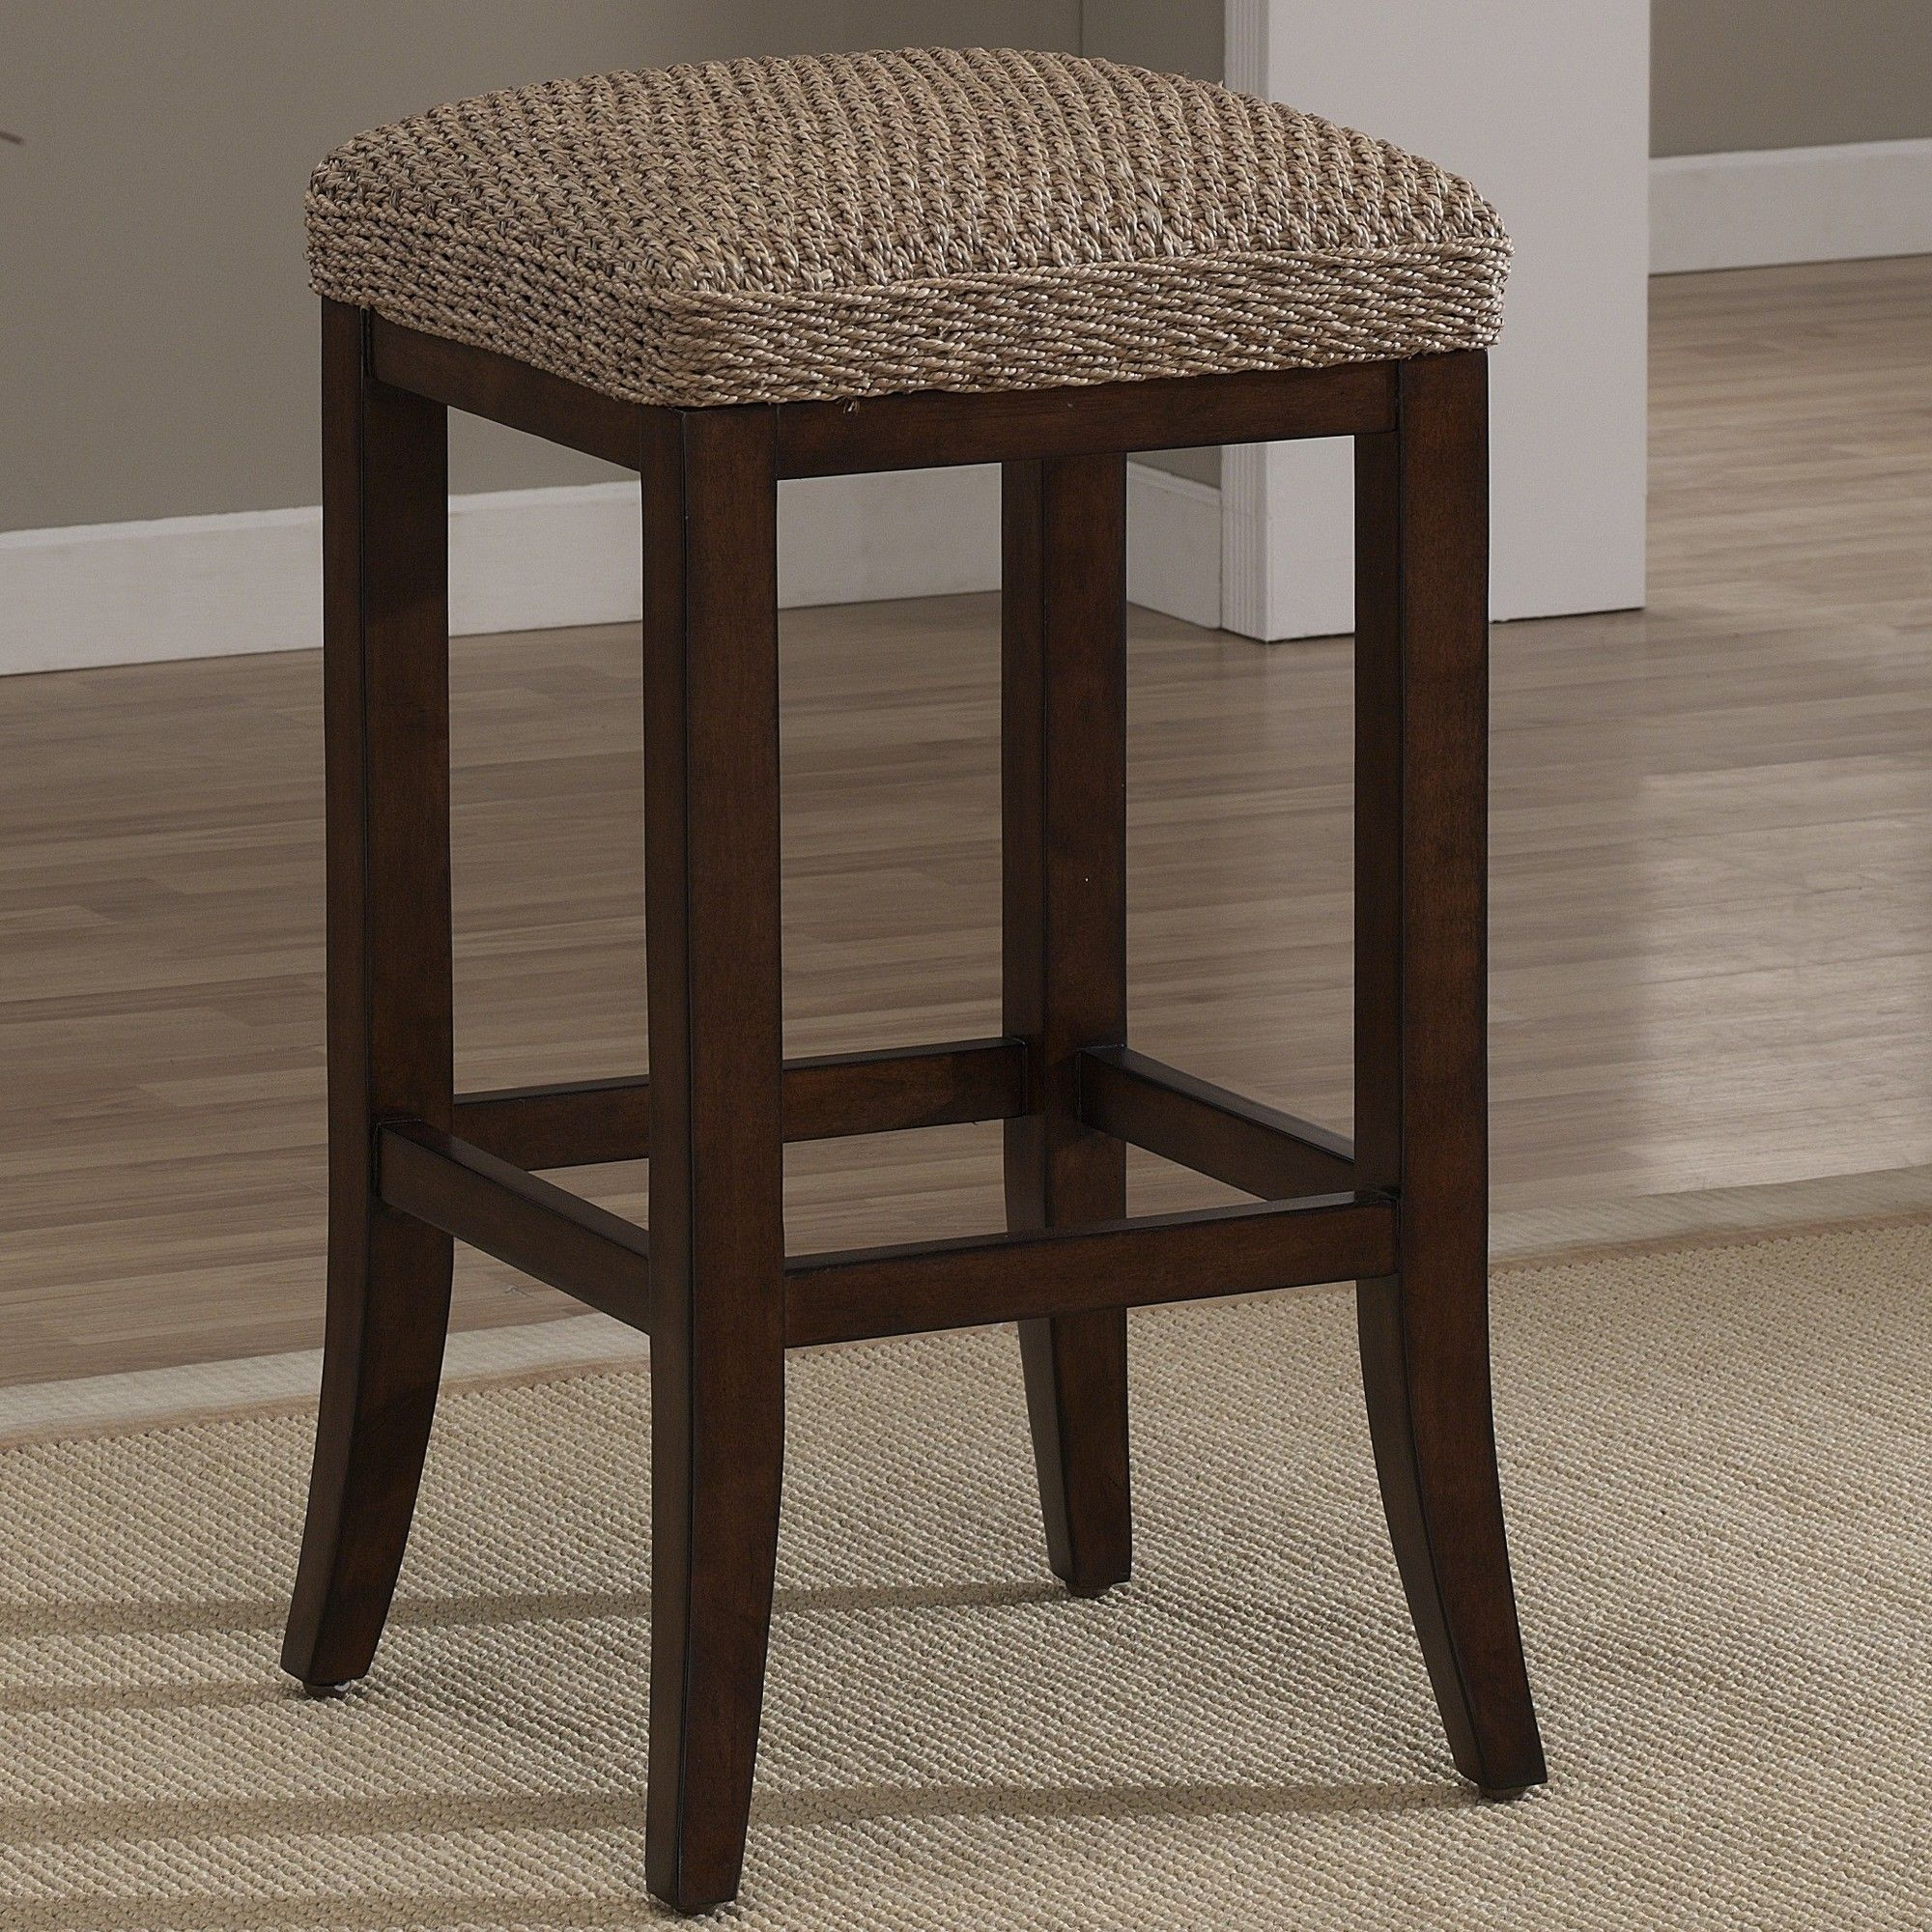 decoration options wayfair stool inspire bar stools swivel